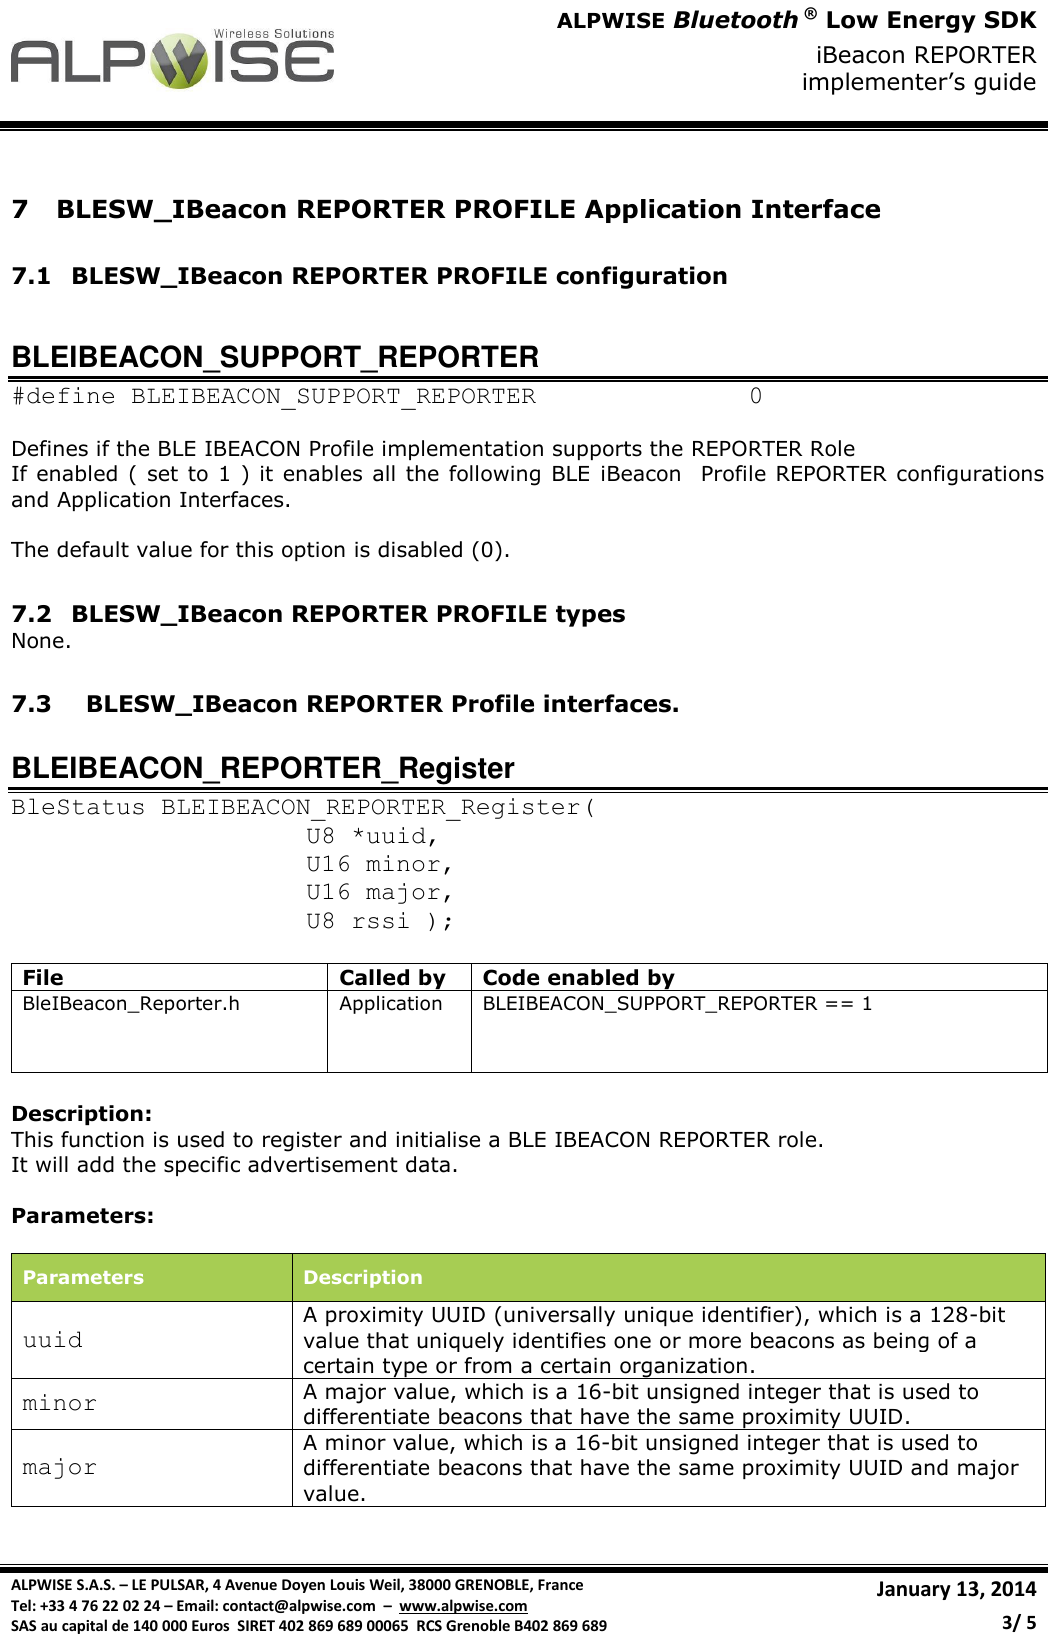 ALPWISE BLESW IBeacon REPORTER Implementer's Guide